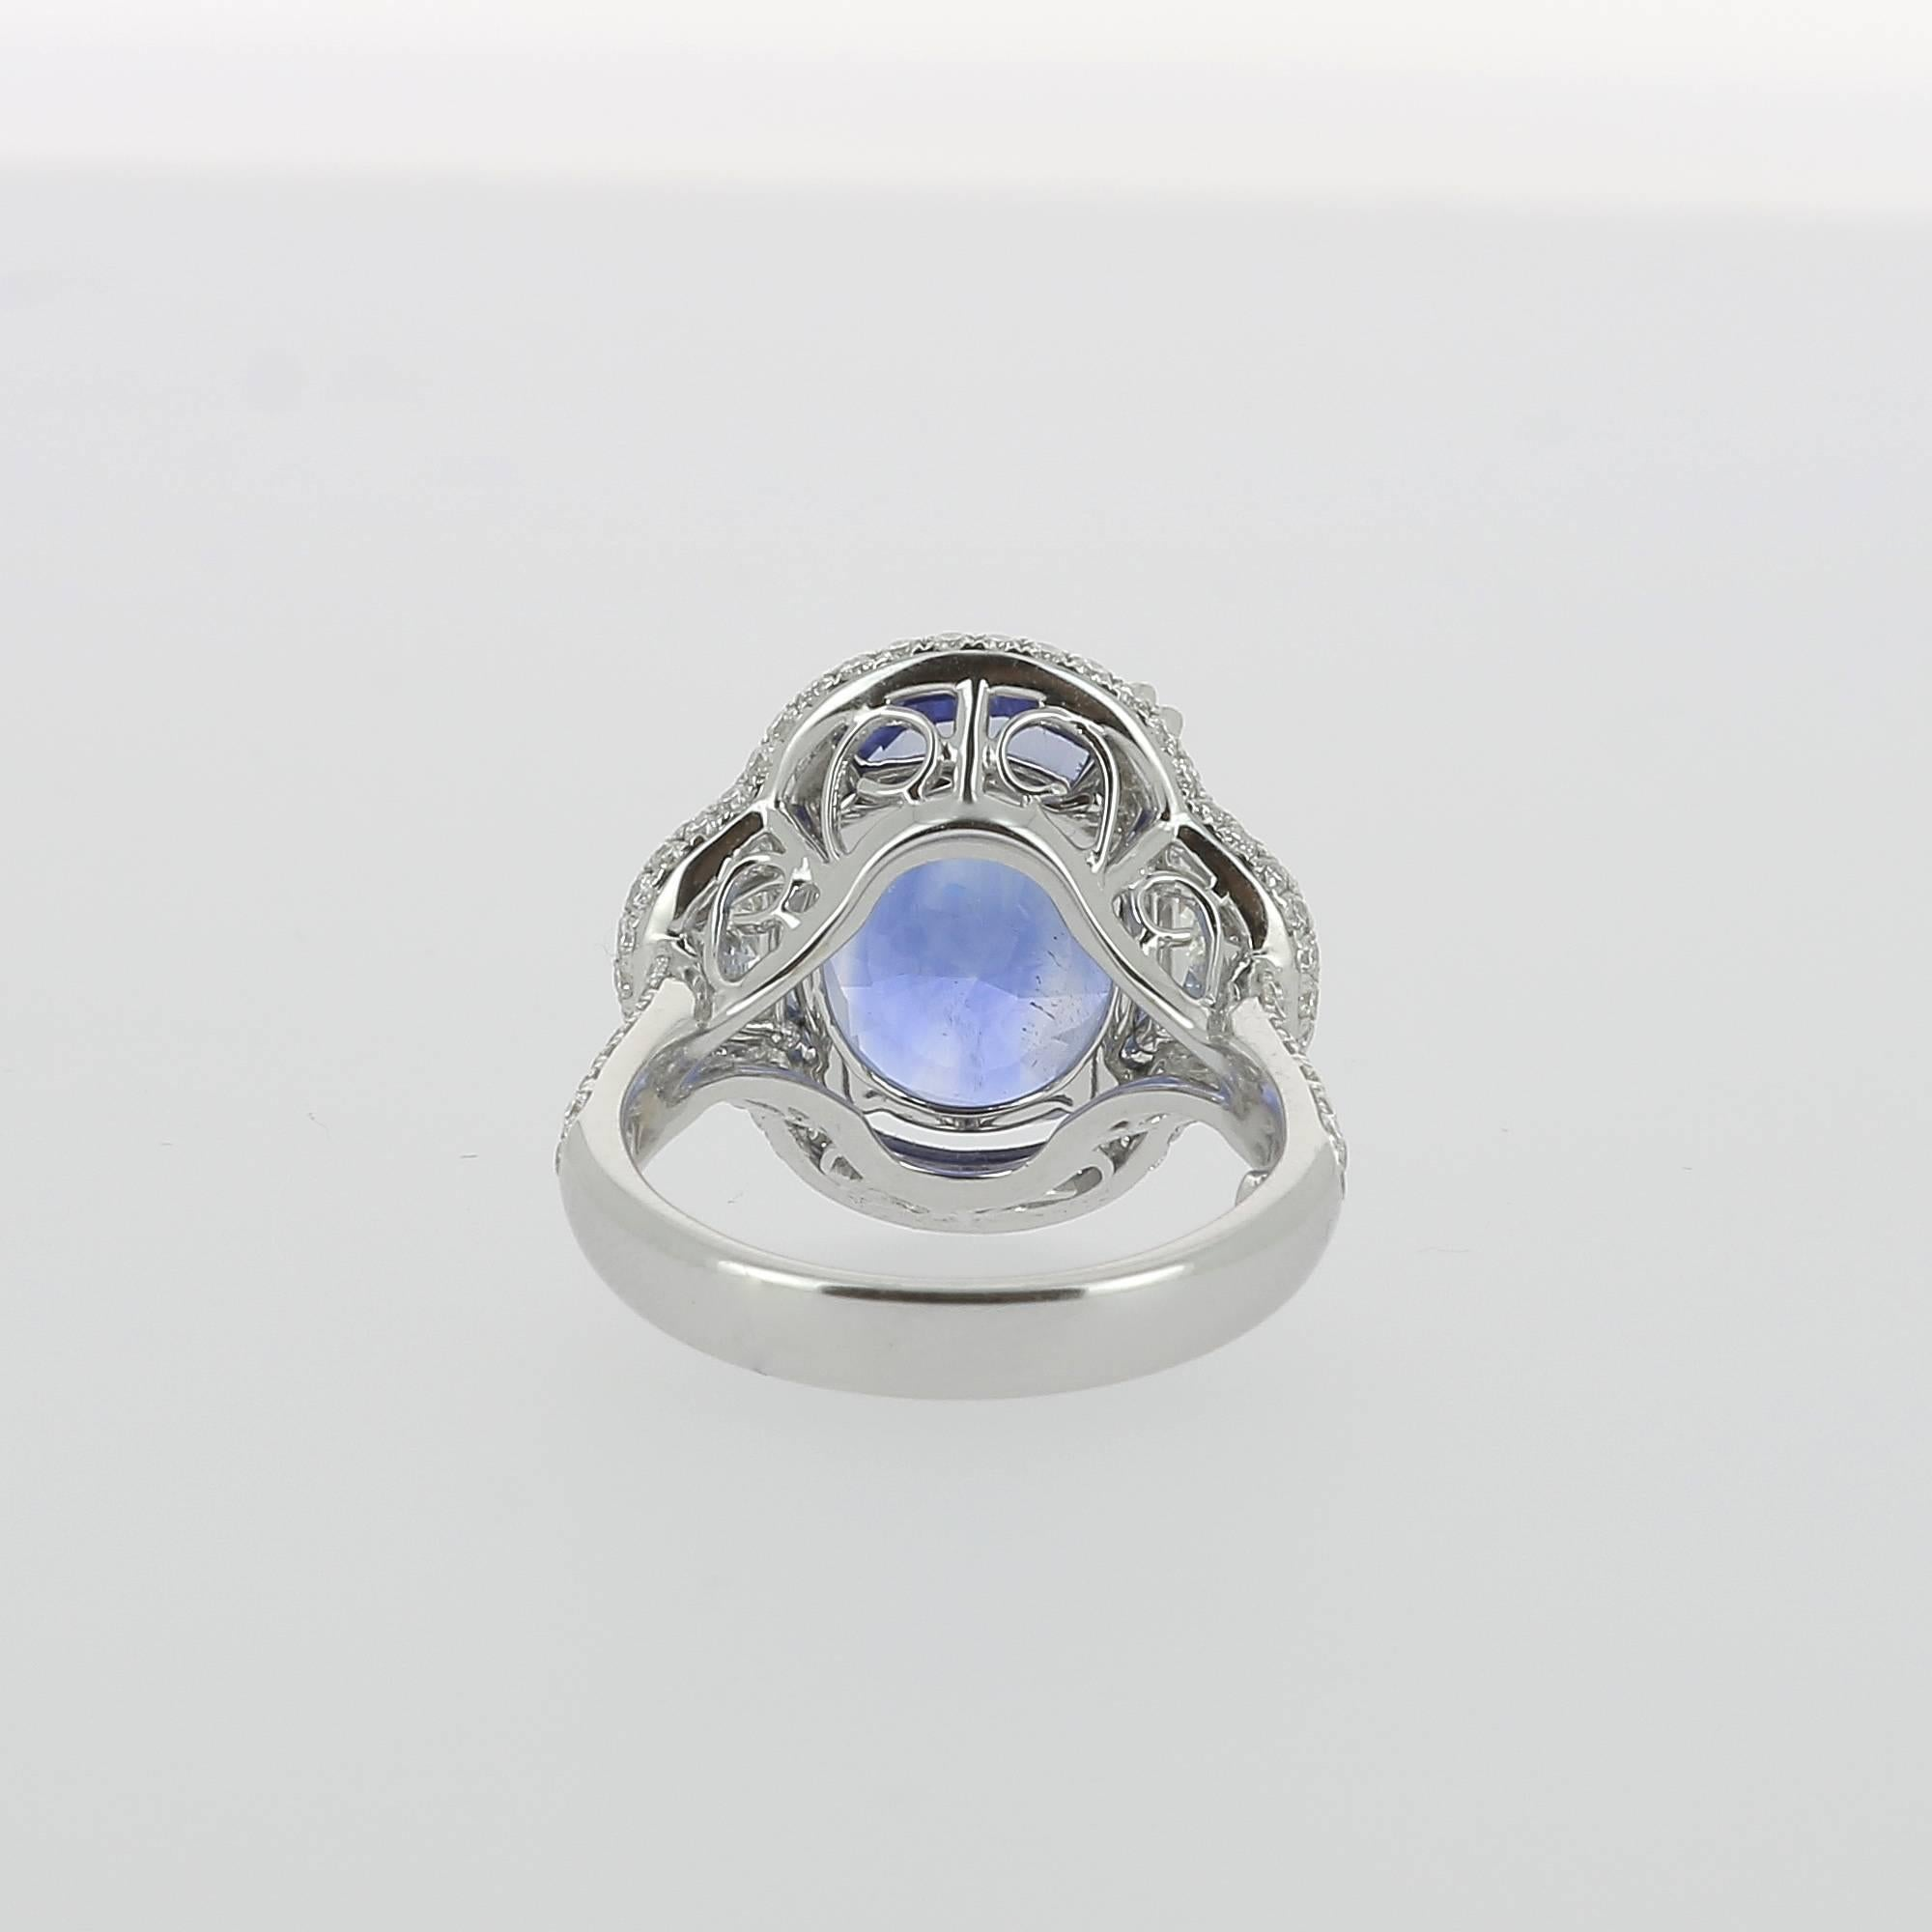 very ring total and band in a vintage round the size approx carat diamond timeless img fine design is platinum weight sapphire